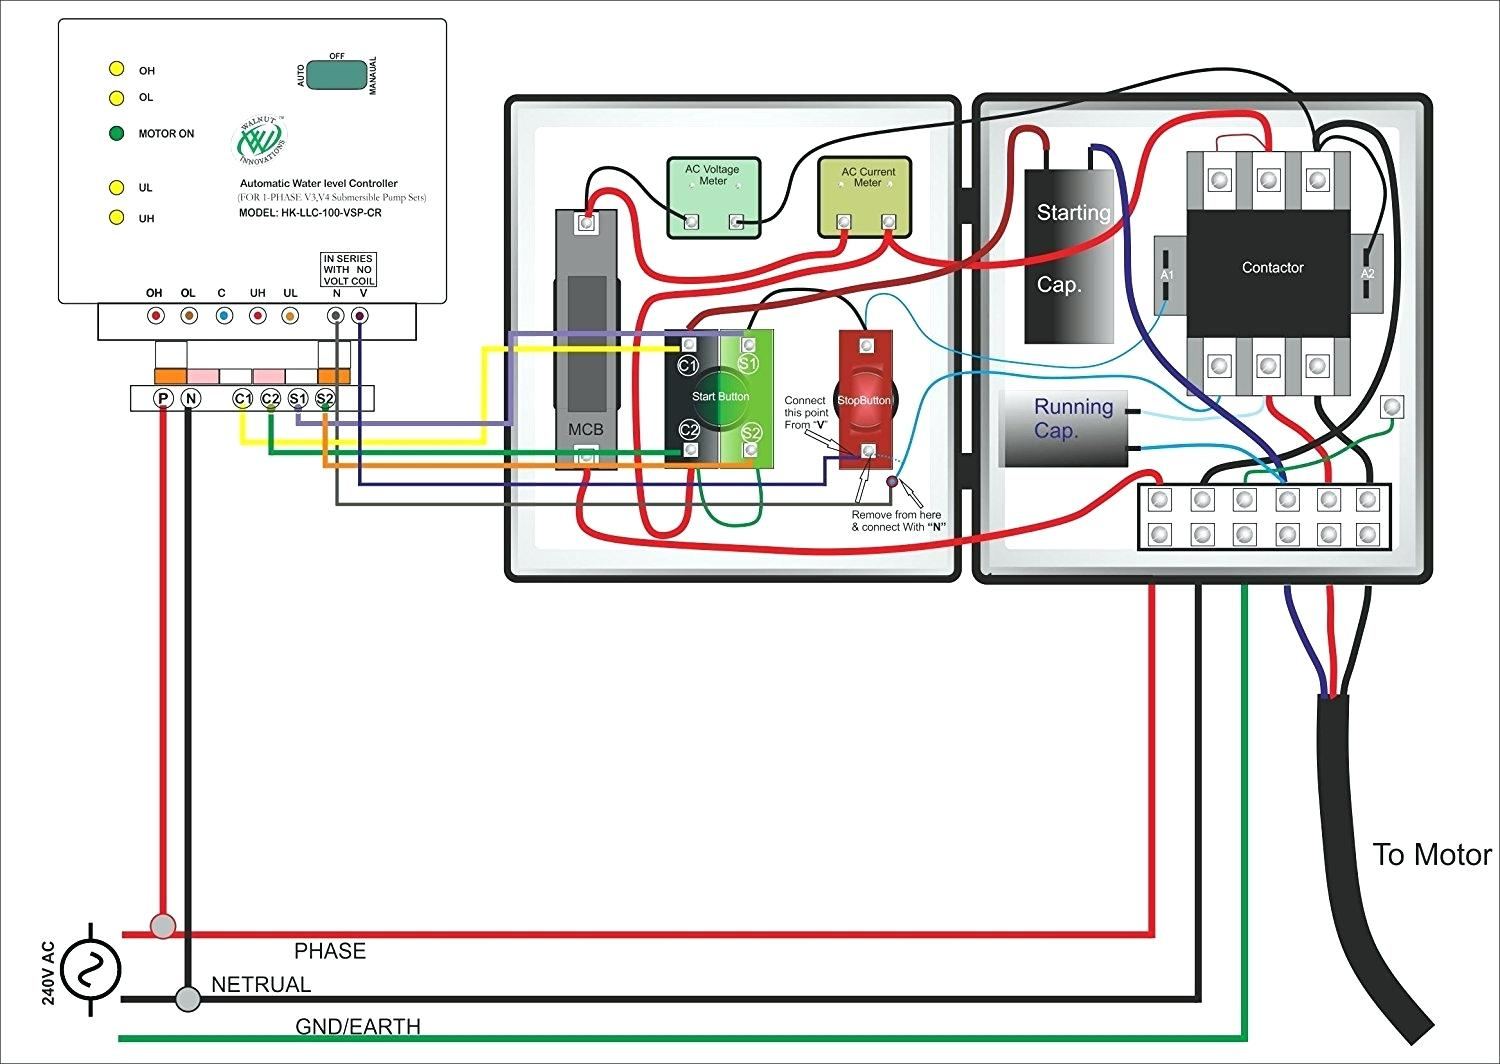 Pump Control Schematic | circuit diagram template on motor control diagram, 3 wire pump controller diagram, stage lighting diagram, marquis spa parts diagram, solana spa electrical box diagram,